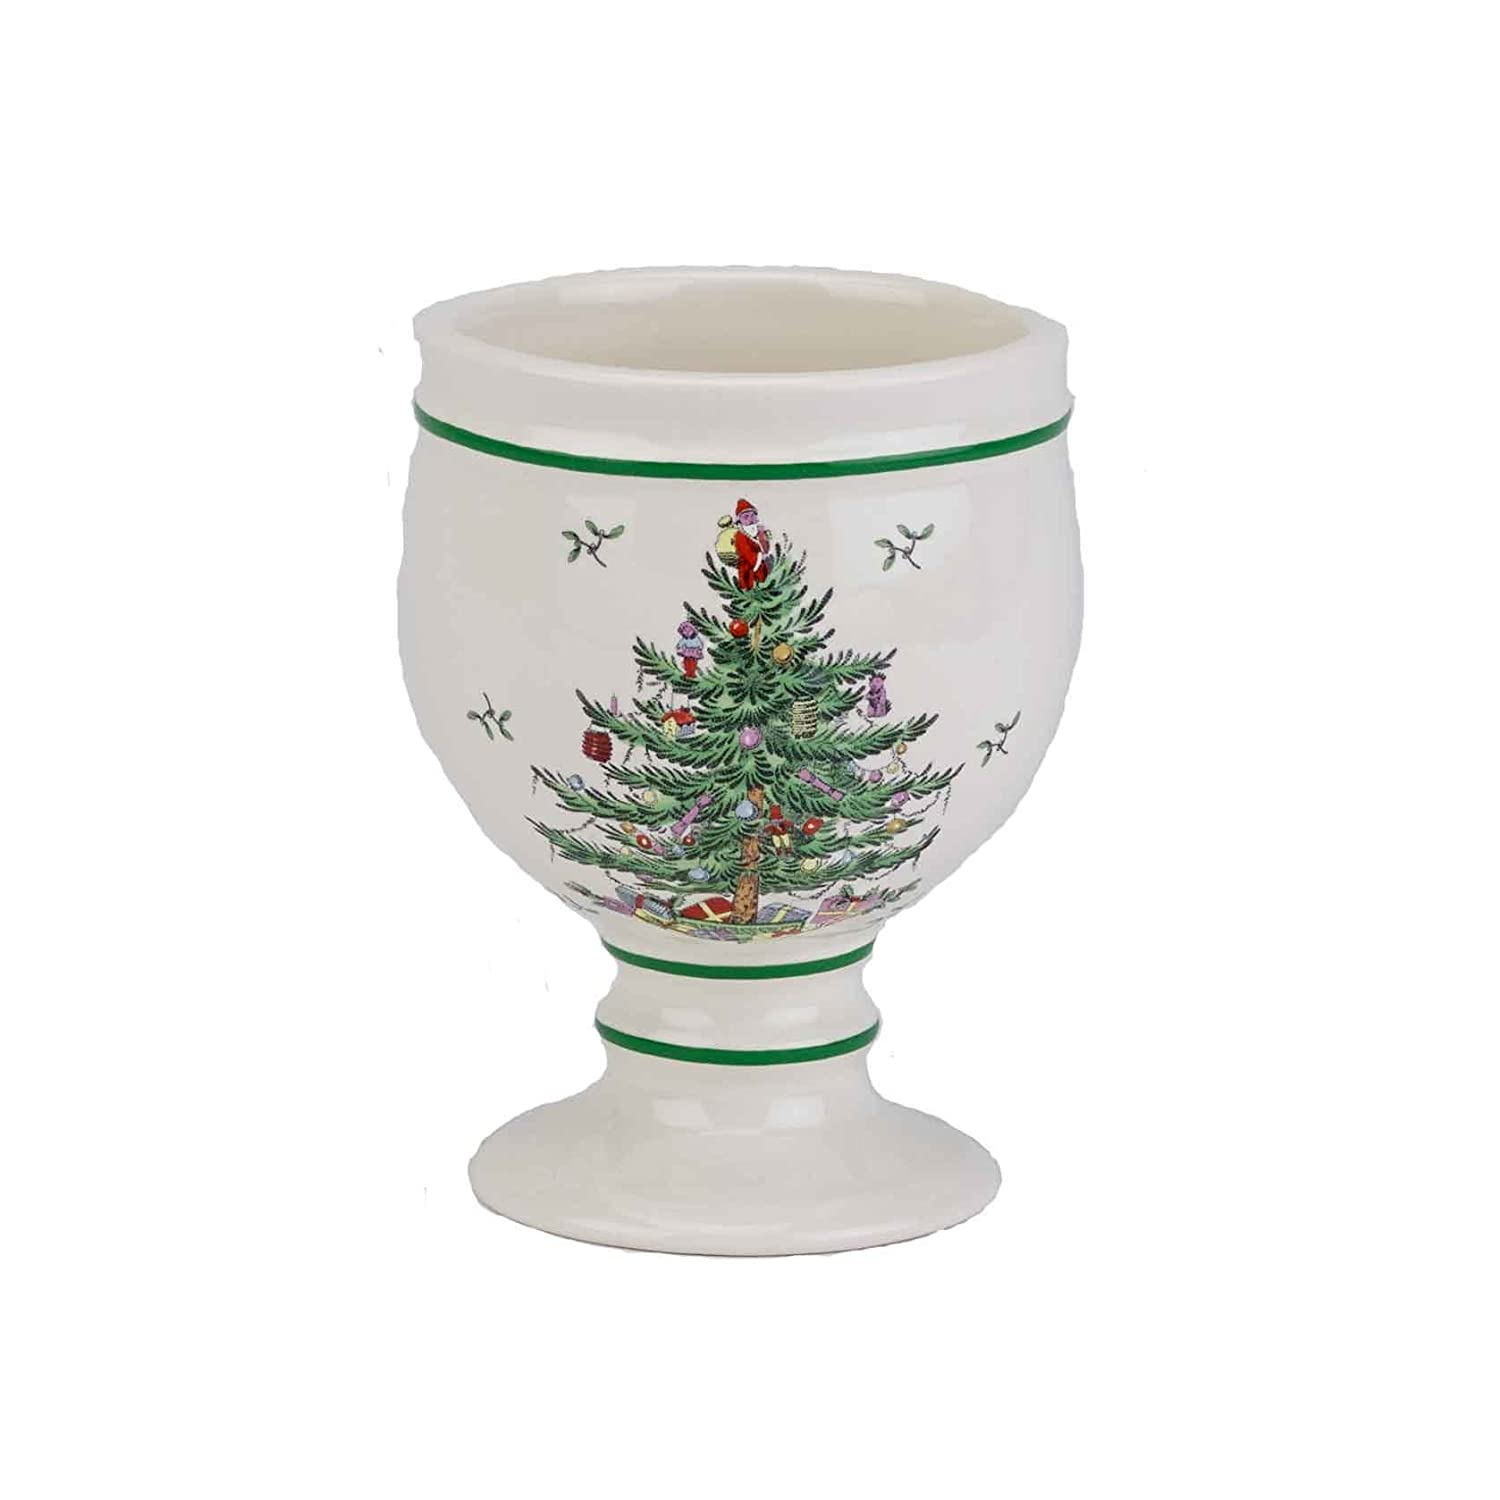 Christmas Tree Bathroom Decor By Spode